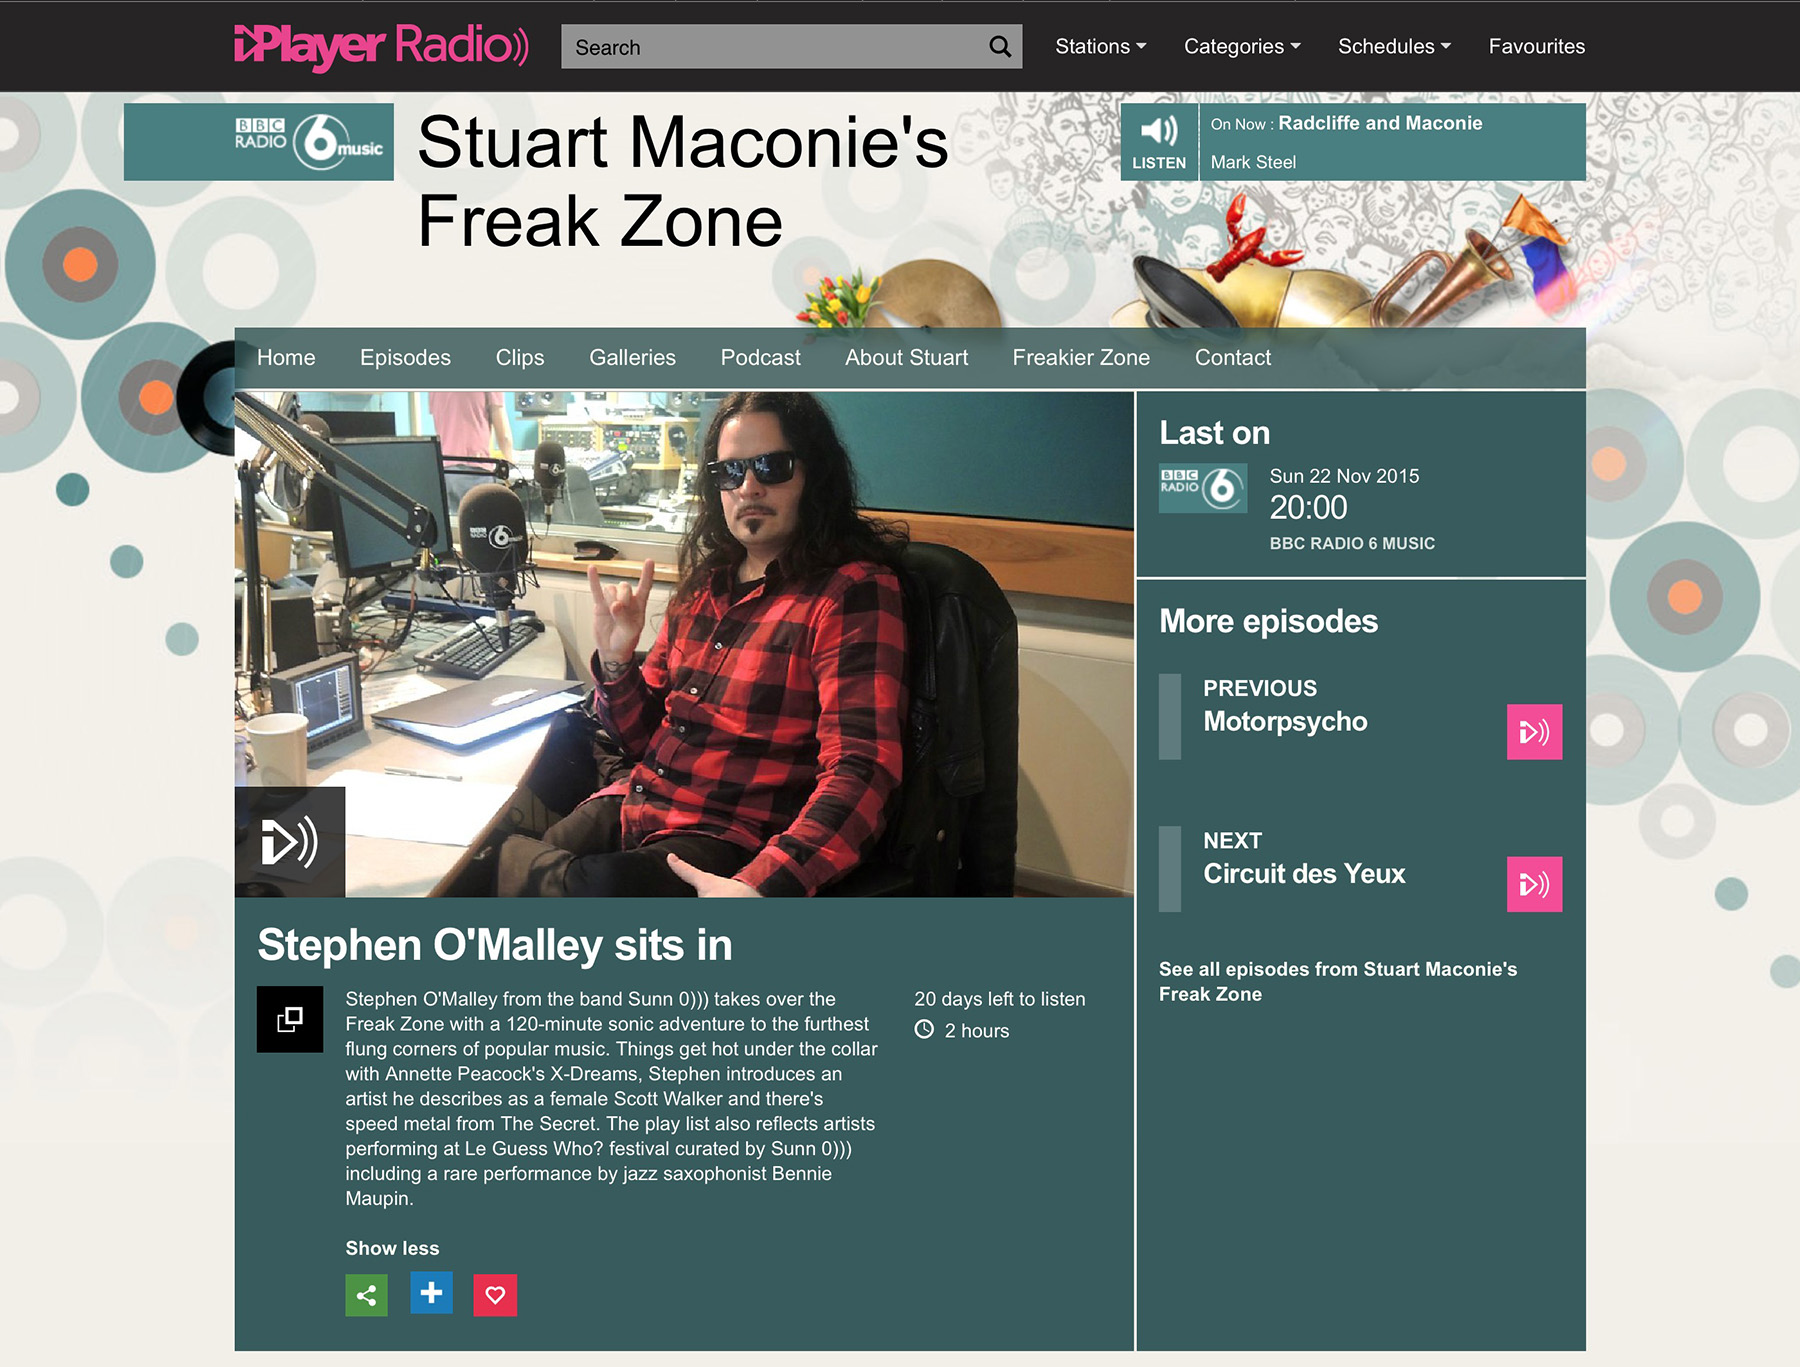 Stephen O'Malley sits in Stuart Maconie's Freak Zone on BBC6 22 Nov 2015